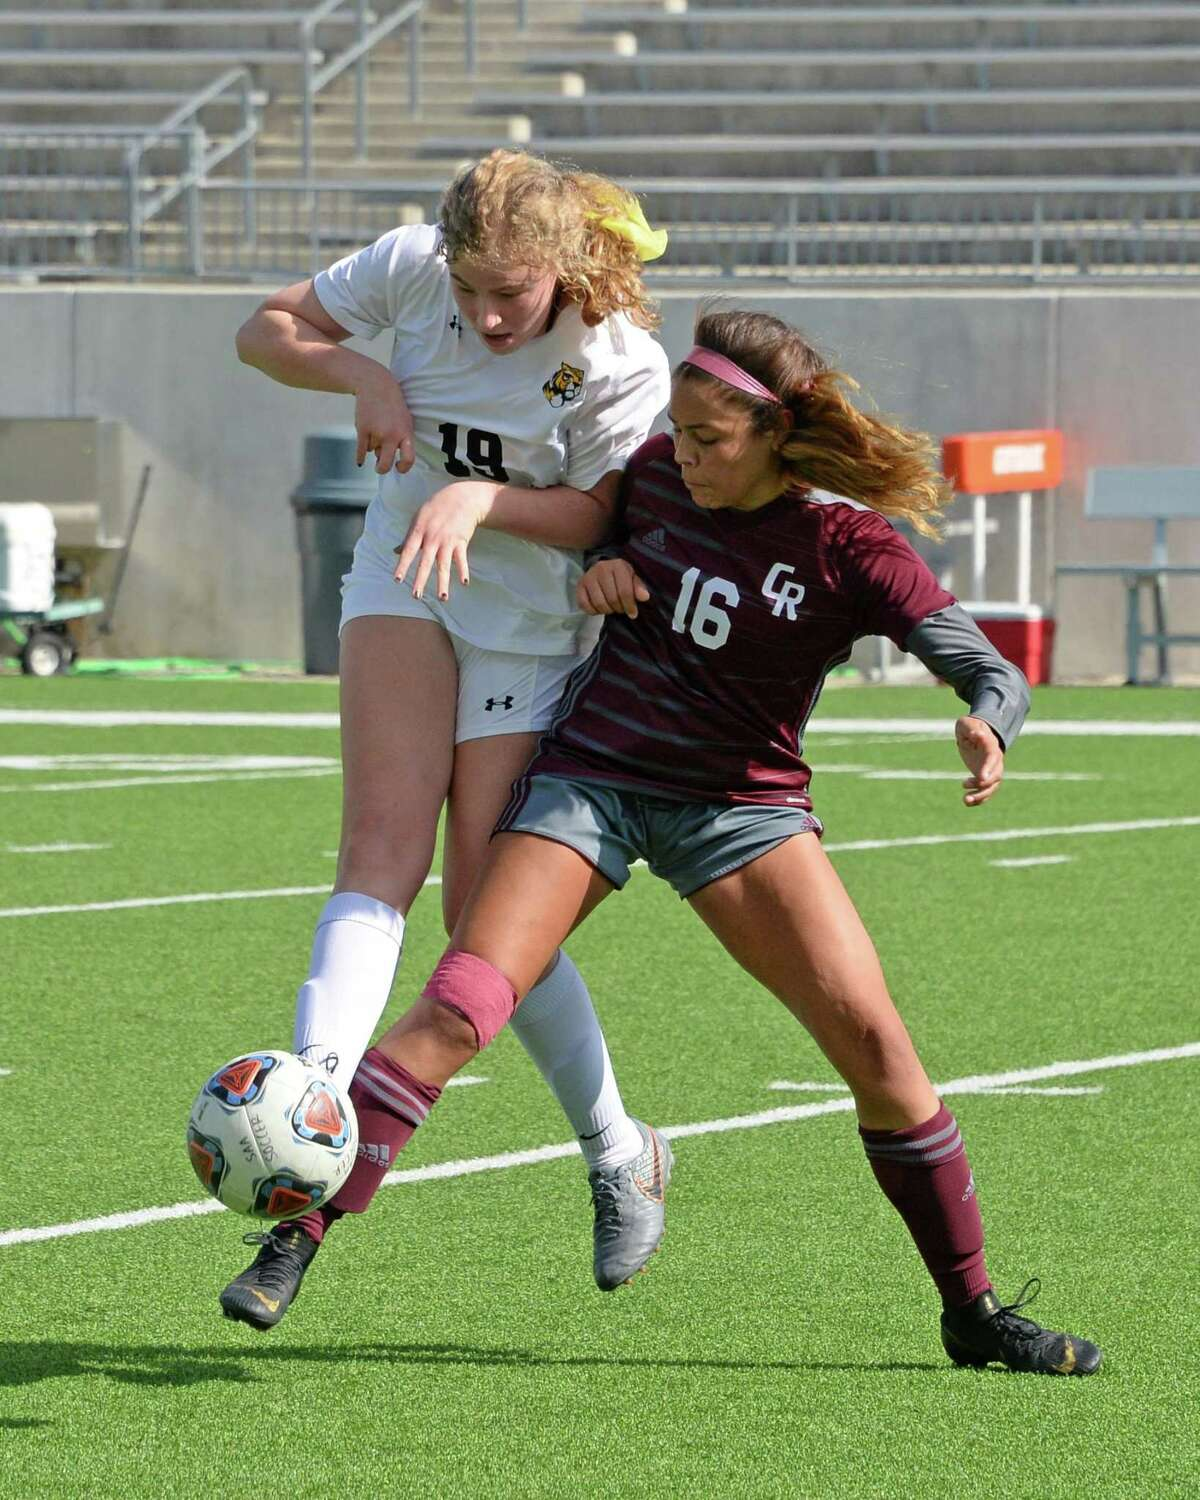 Sara Price (19) of St. Agnes and Junel Quintero (16) of Cinco Ranch compete for a ball during the first half of a high school soccer game between the Cinco Ranch Cougars and the St. Agnes Tigers in the Cougar Bracket final of the I-10 Shootout on Saturday, January 11, 2020 at Legacy Stadium, Katy, TX.